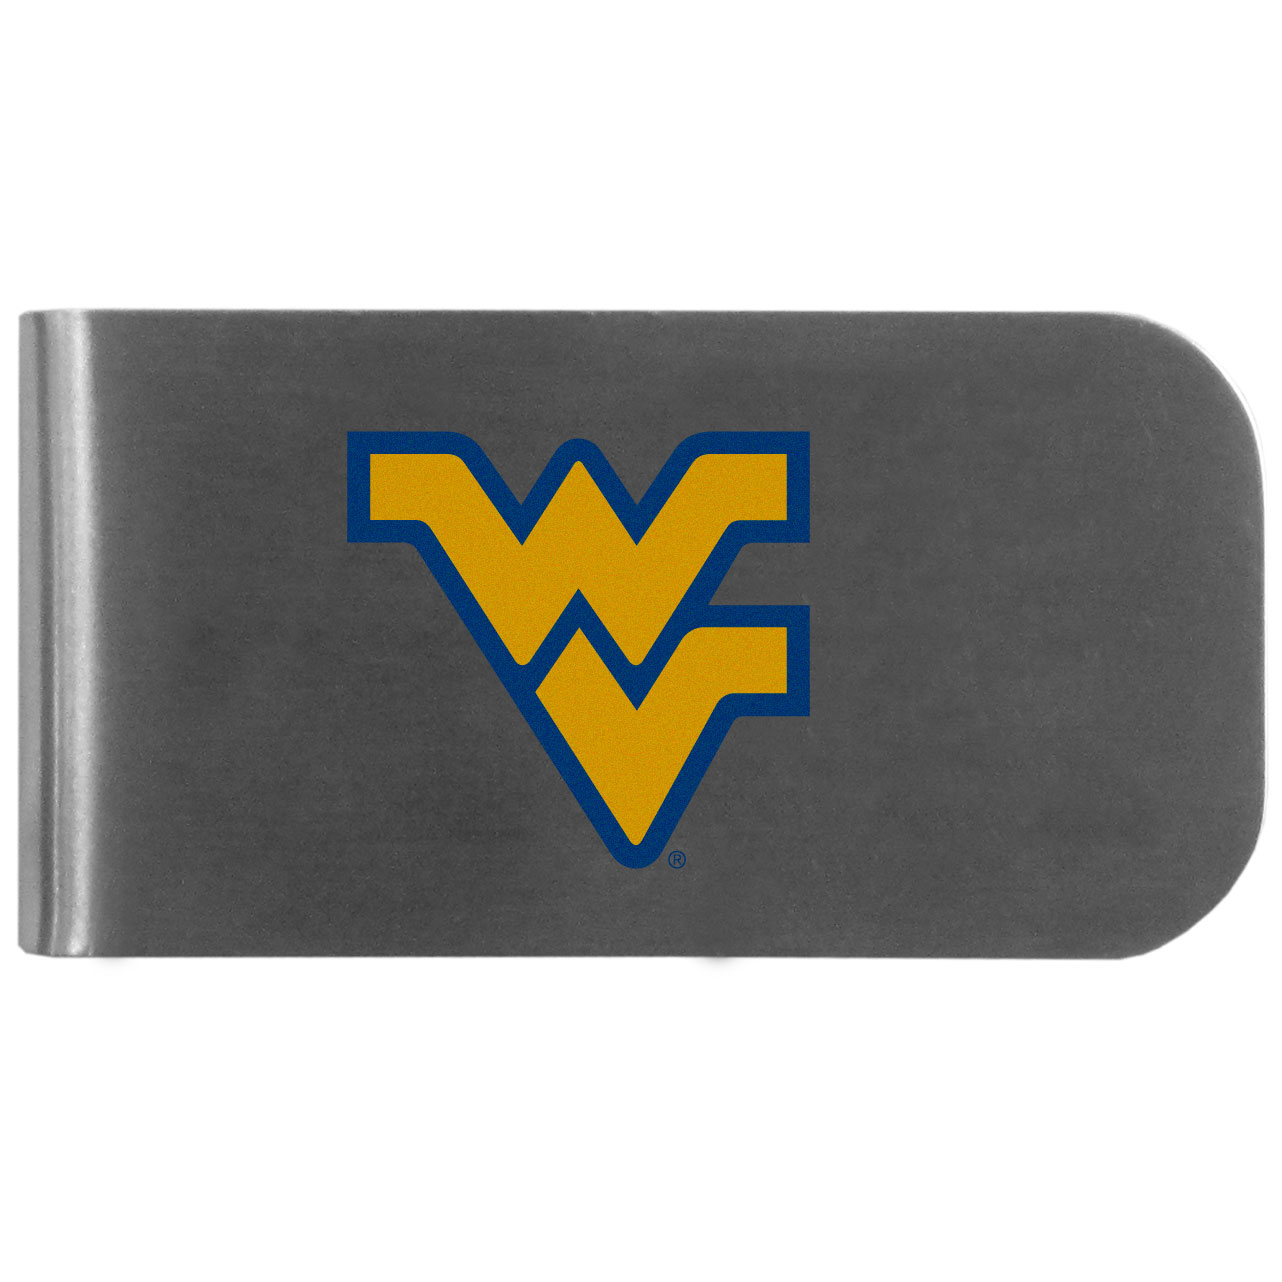 W. Virginia Mountaineers Logo Bottle Opener Money Clip - This unique money clip features a classic, brushed-metal finish with a handy bottle opener feature on the back. The clip has the W. Virginia Mountaineers logo expertly printed on the front of the clip.